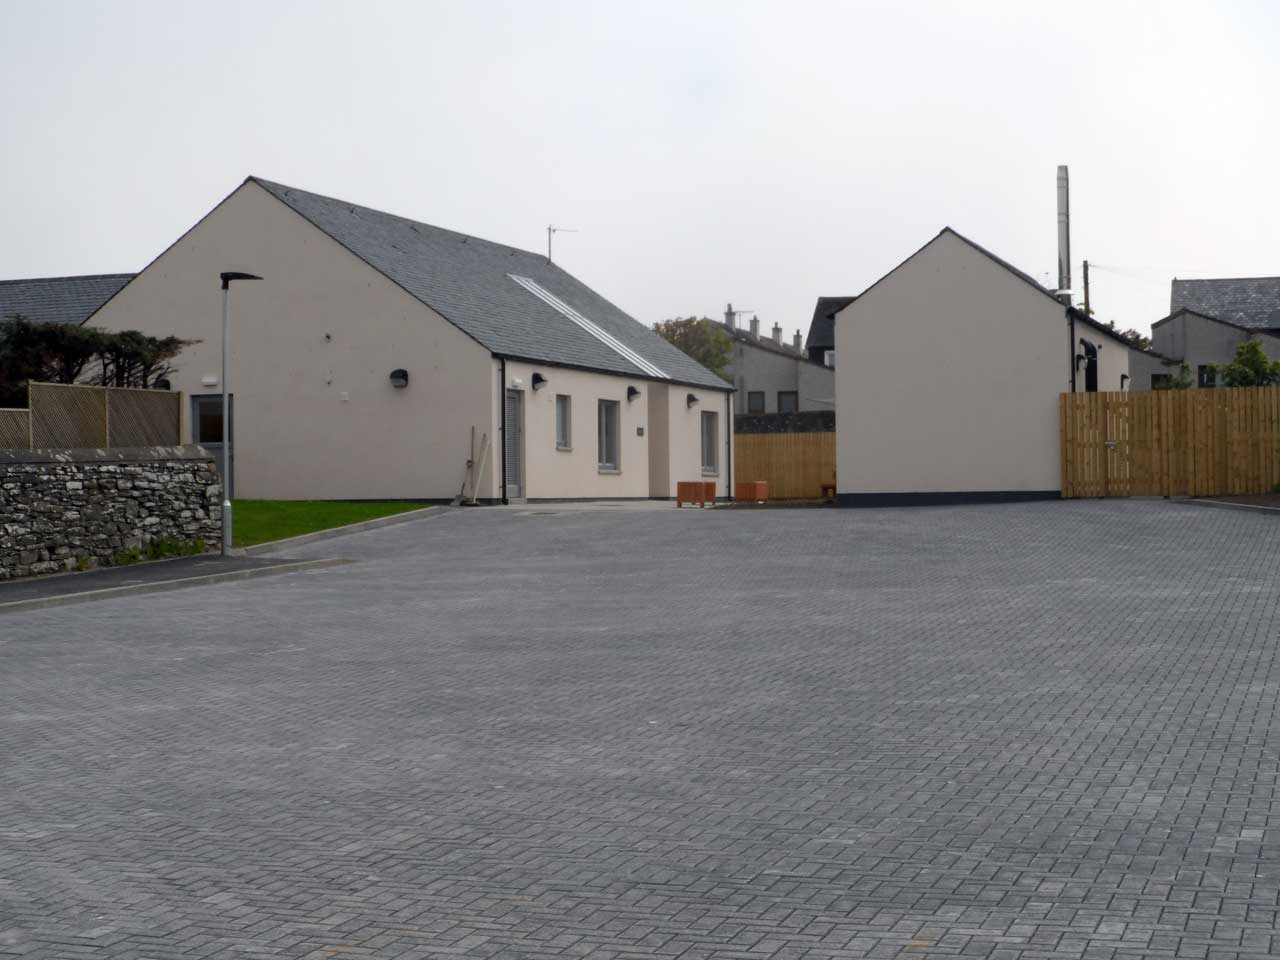 Photo: New Children's Home In Wick 31 May 2014